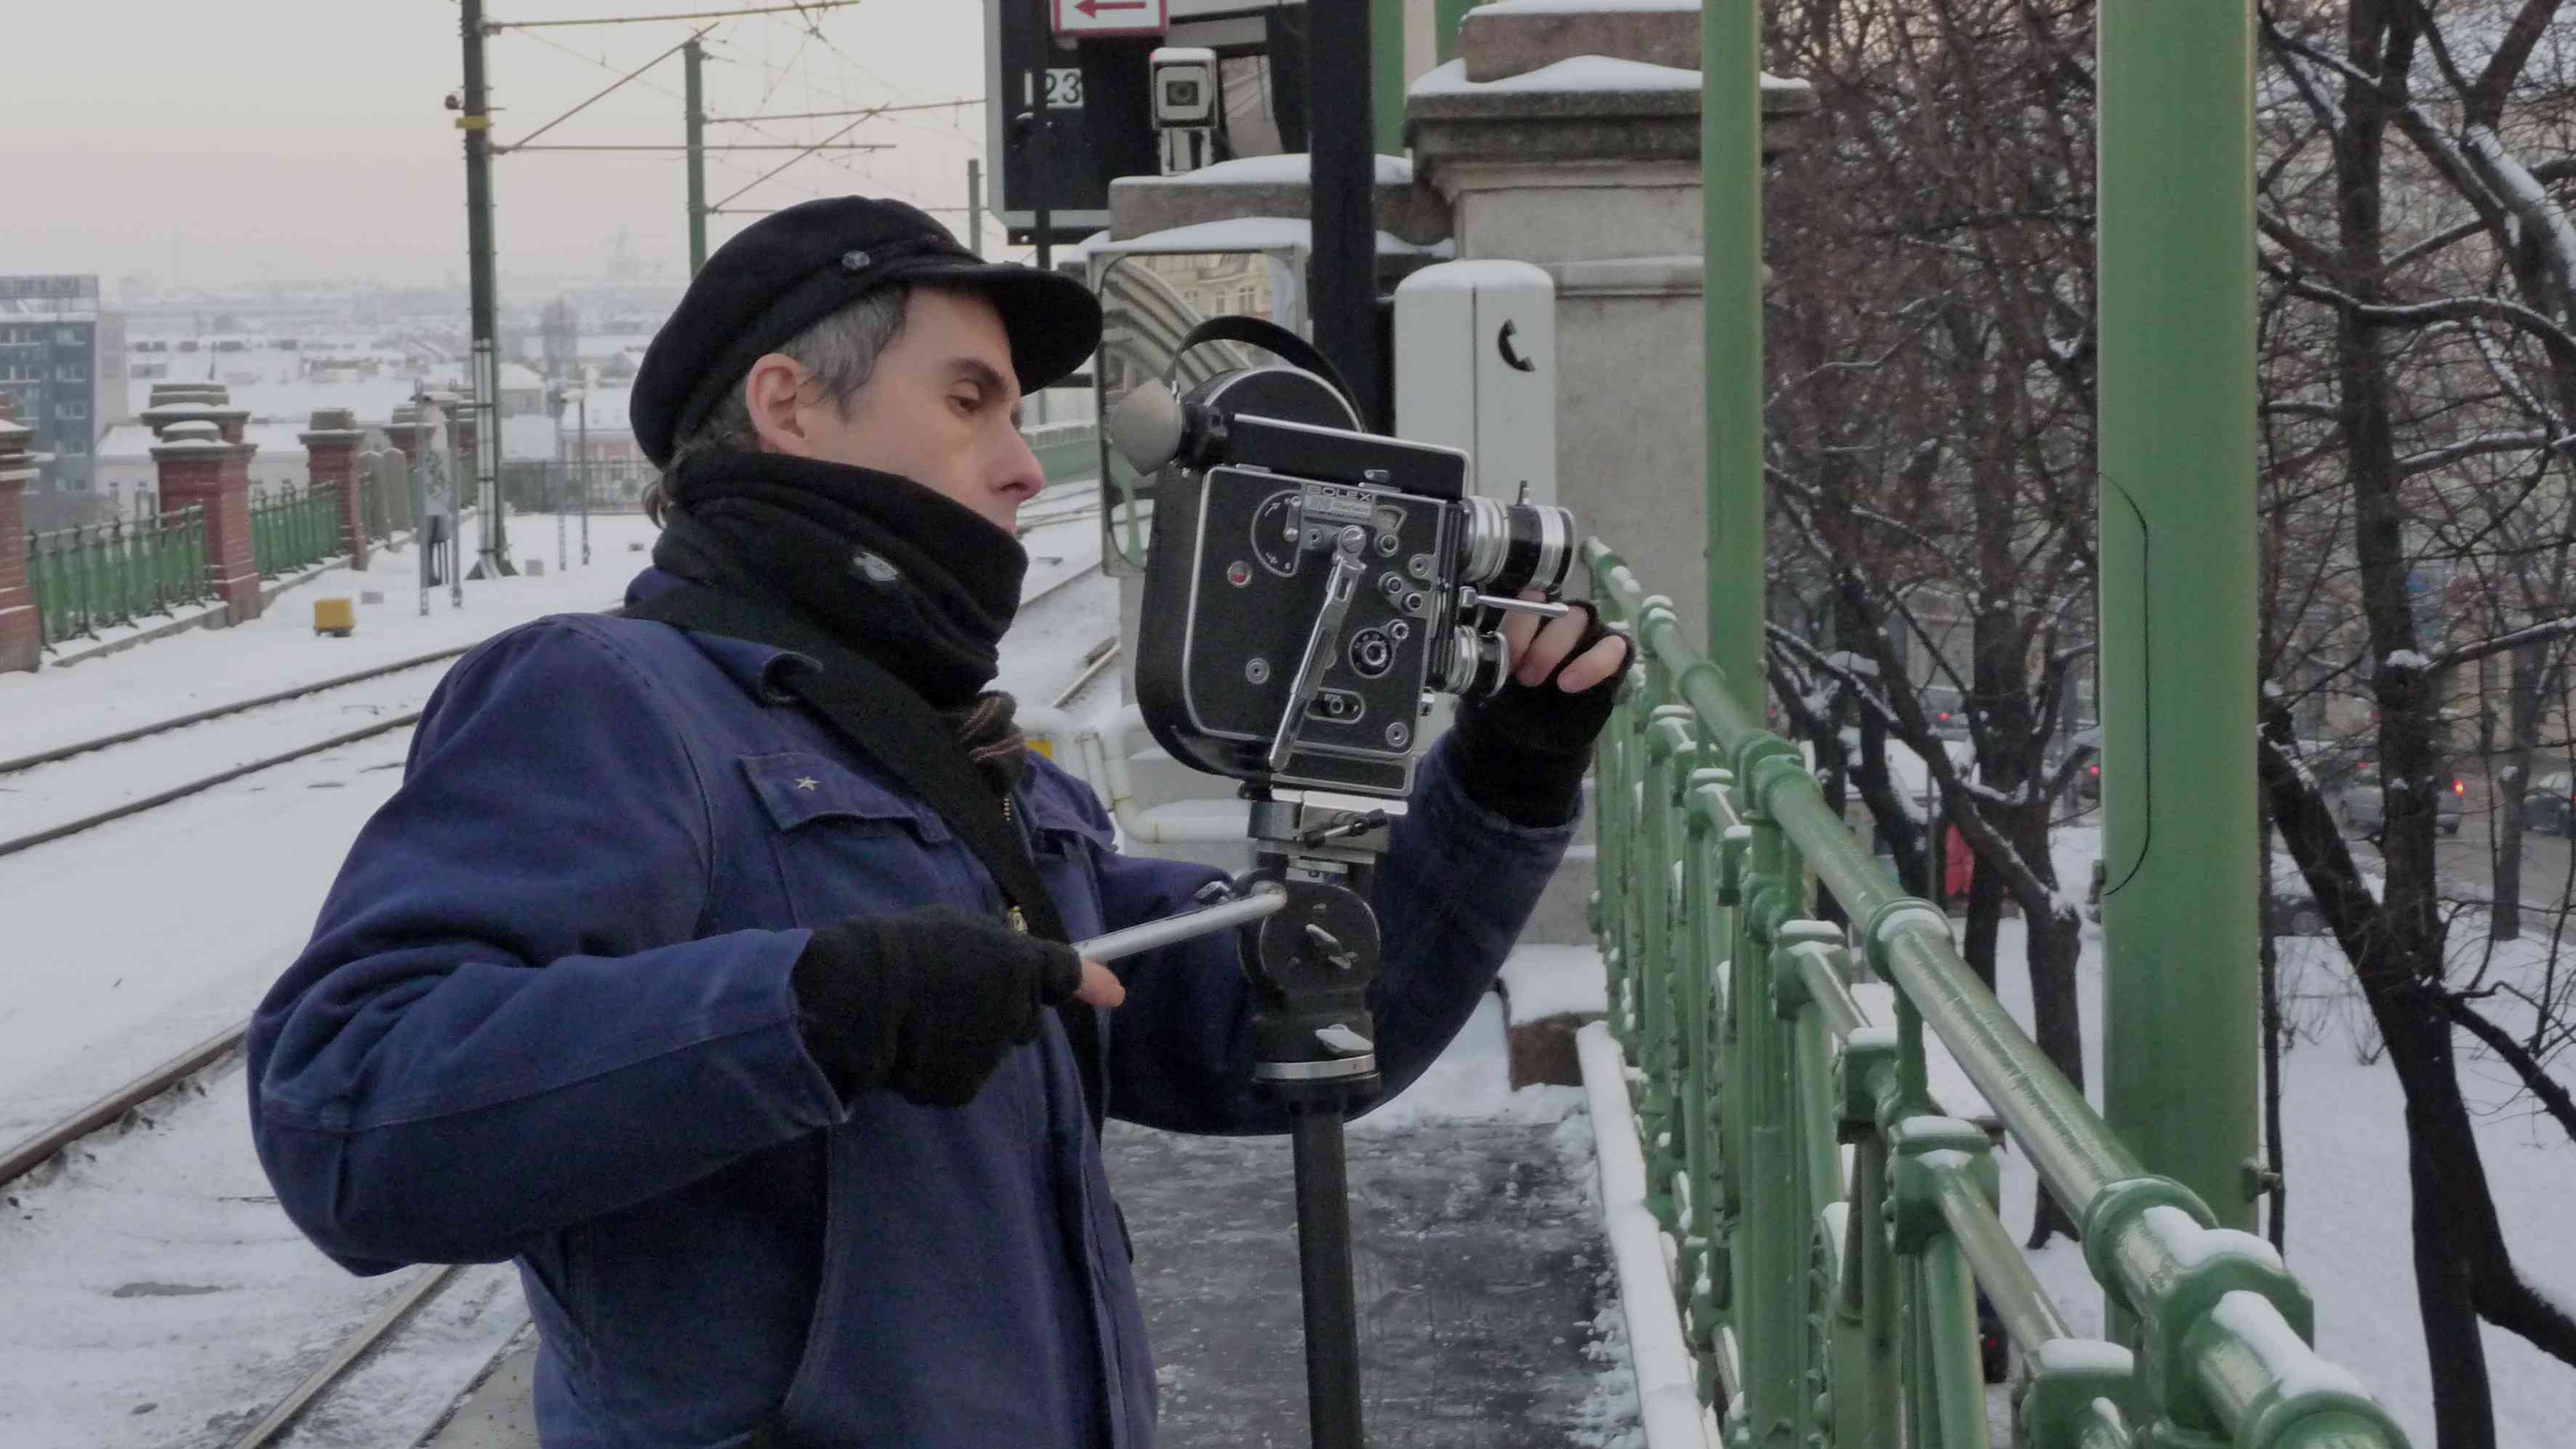 Cohen shooting footage in Vienna (Photo by Paolo Calamita)